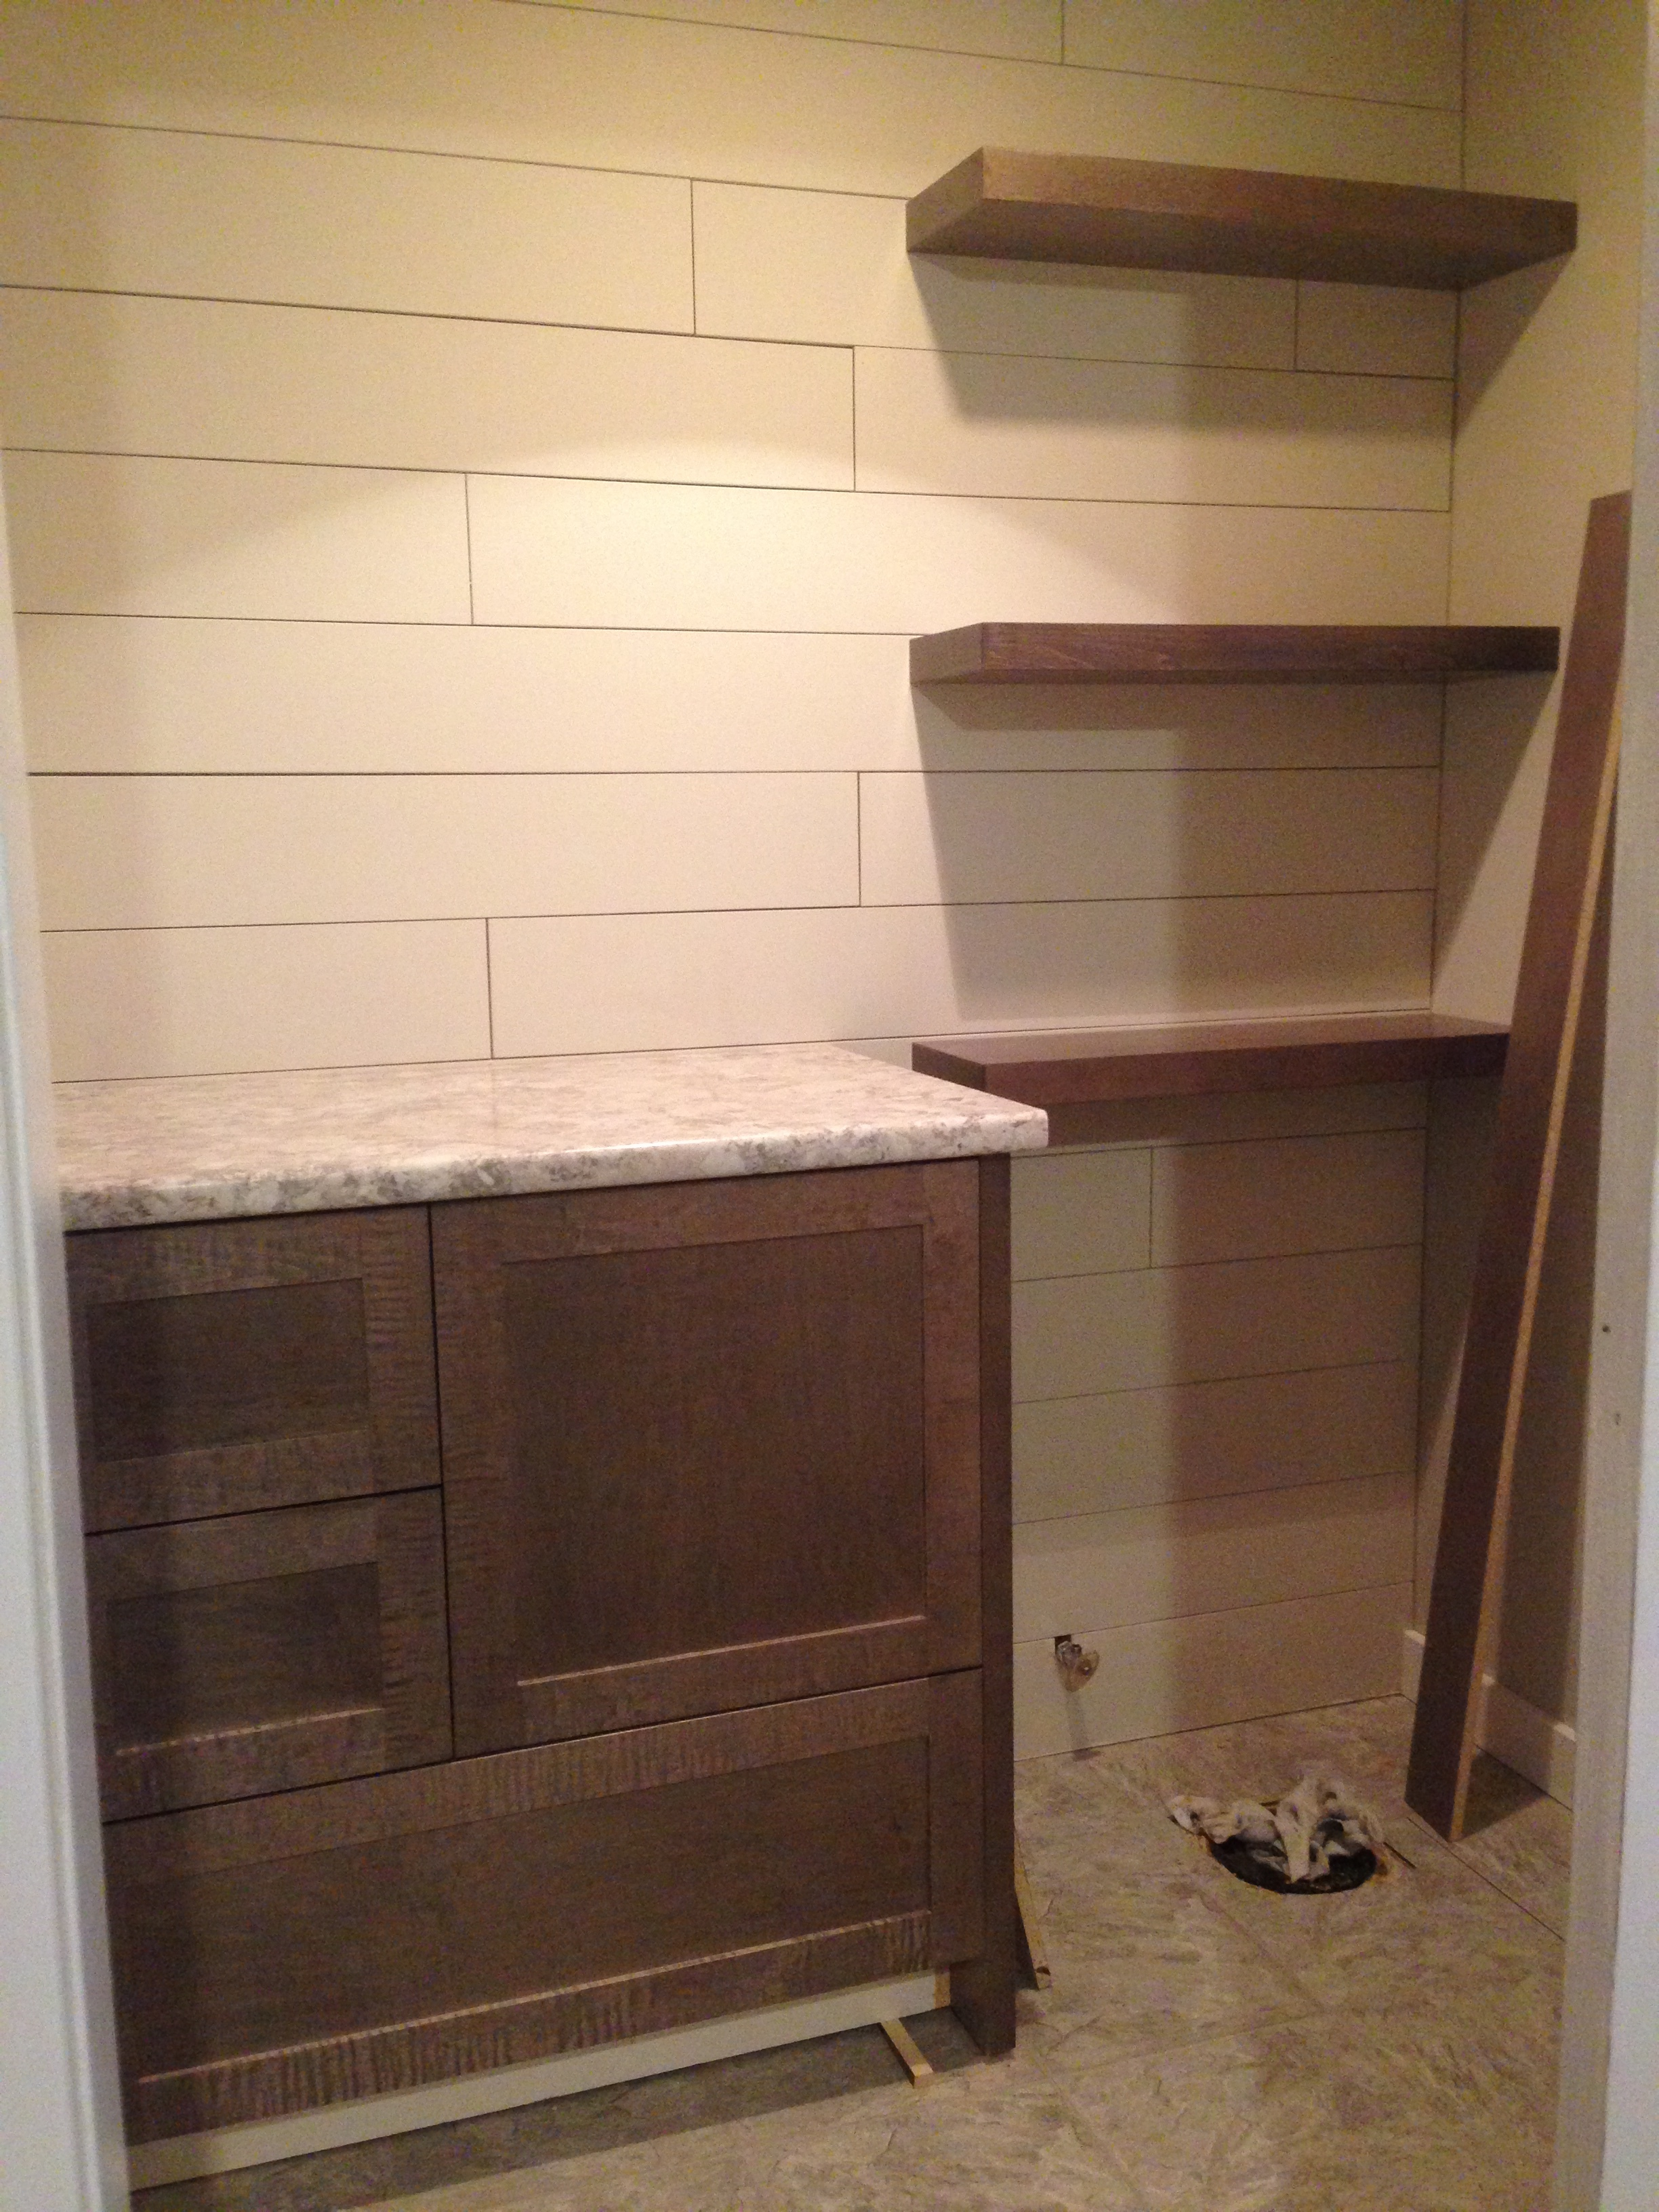 Cabinetry install almost complete.